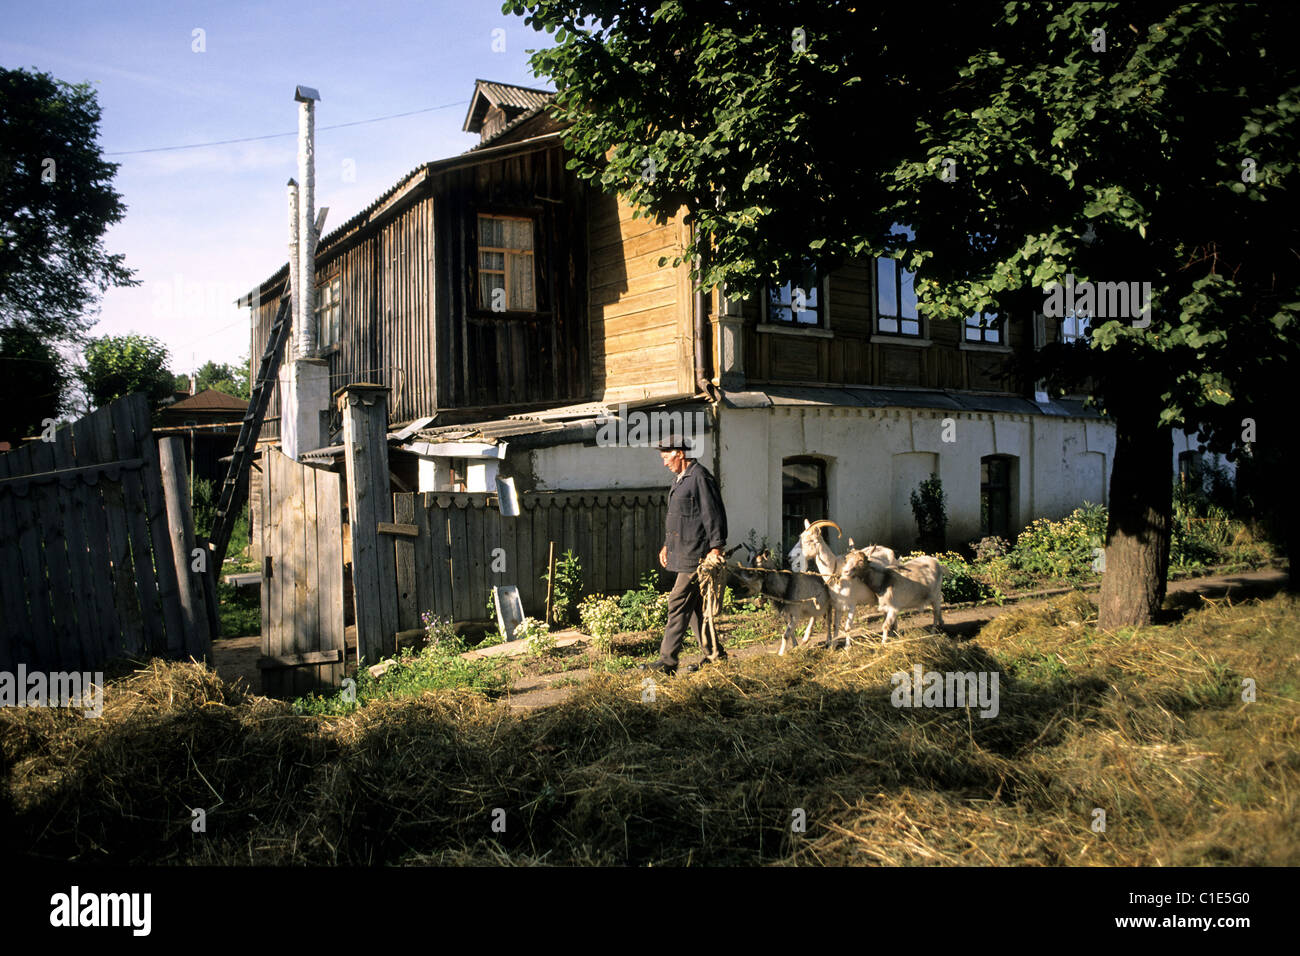 Russia, Golden Ring, Suzdal, an Izba (wooden house) - Stock Image